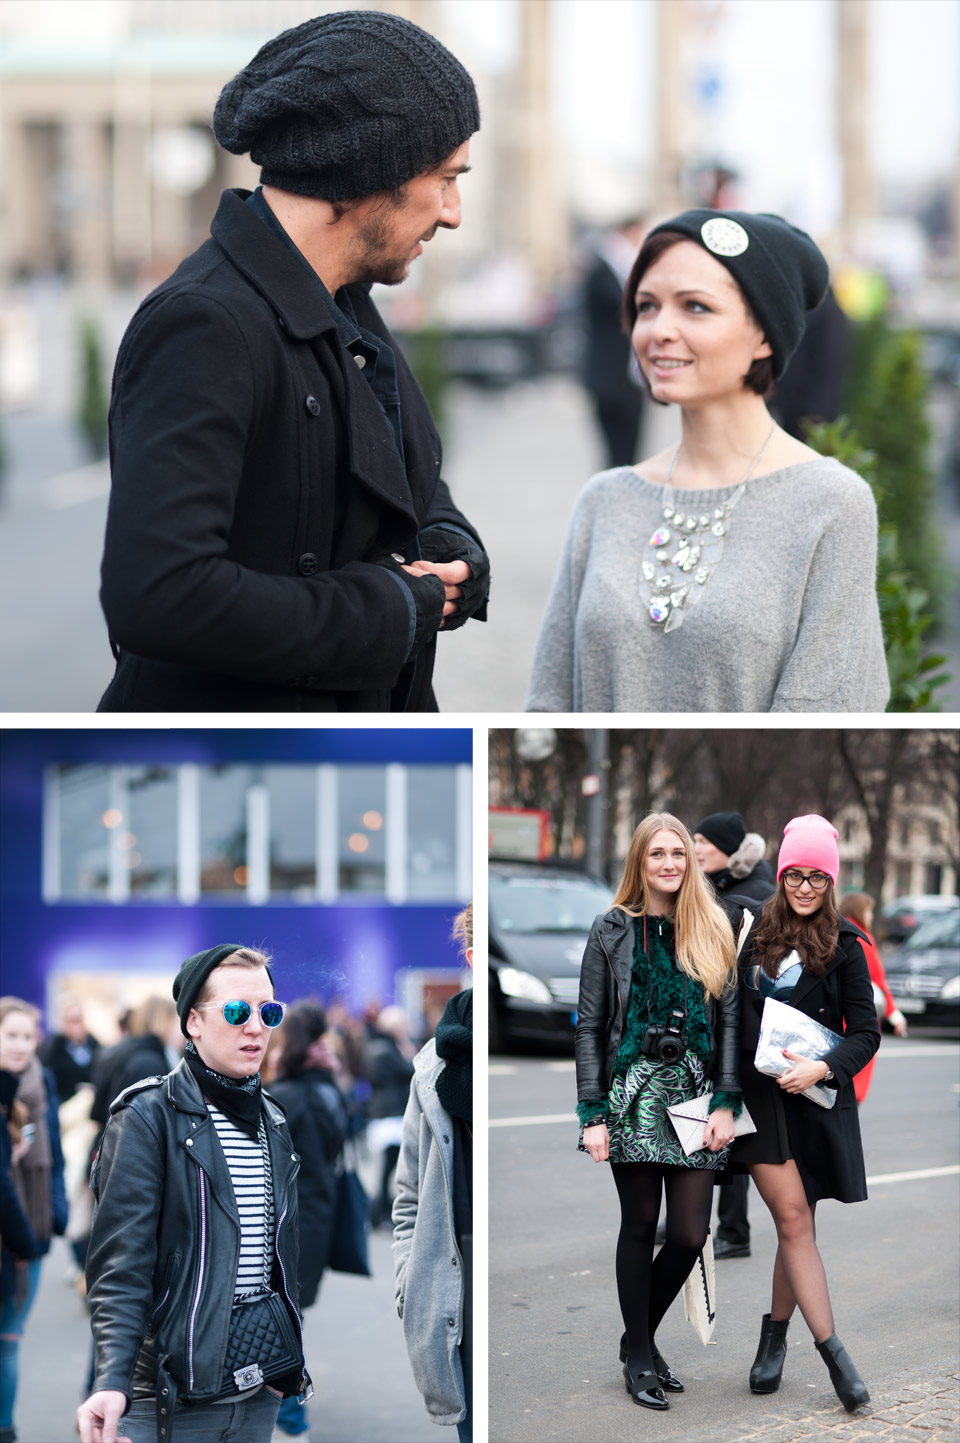 berlin, fashion week, fashionweek, hamburg, fashionjunk streetstyle fashion mode blog, blogger, runway IVANMAN mercedes benz fashion, thomas hayo ksenia lapina, mario tino